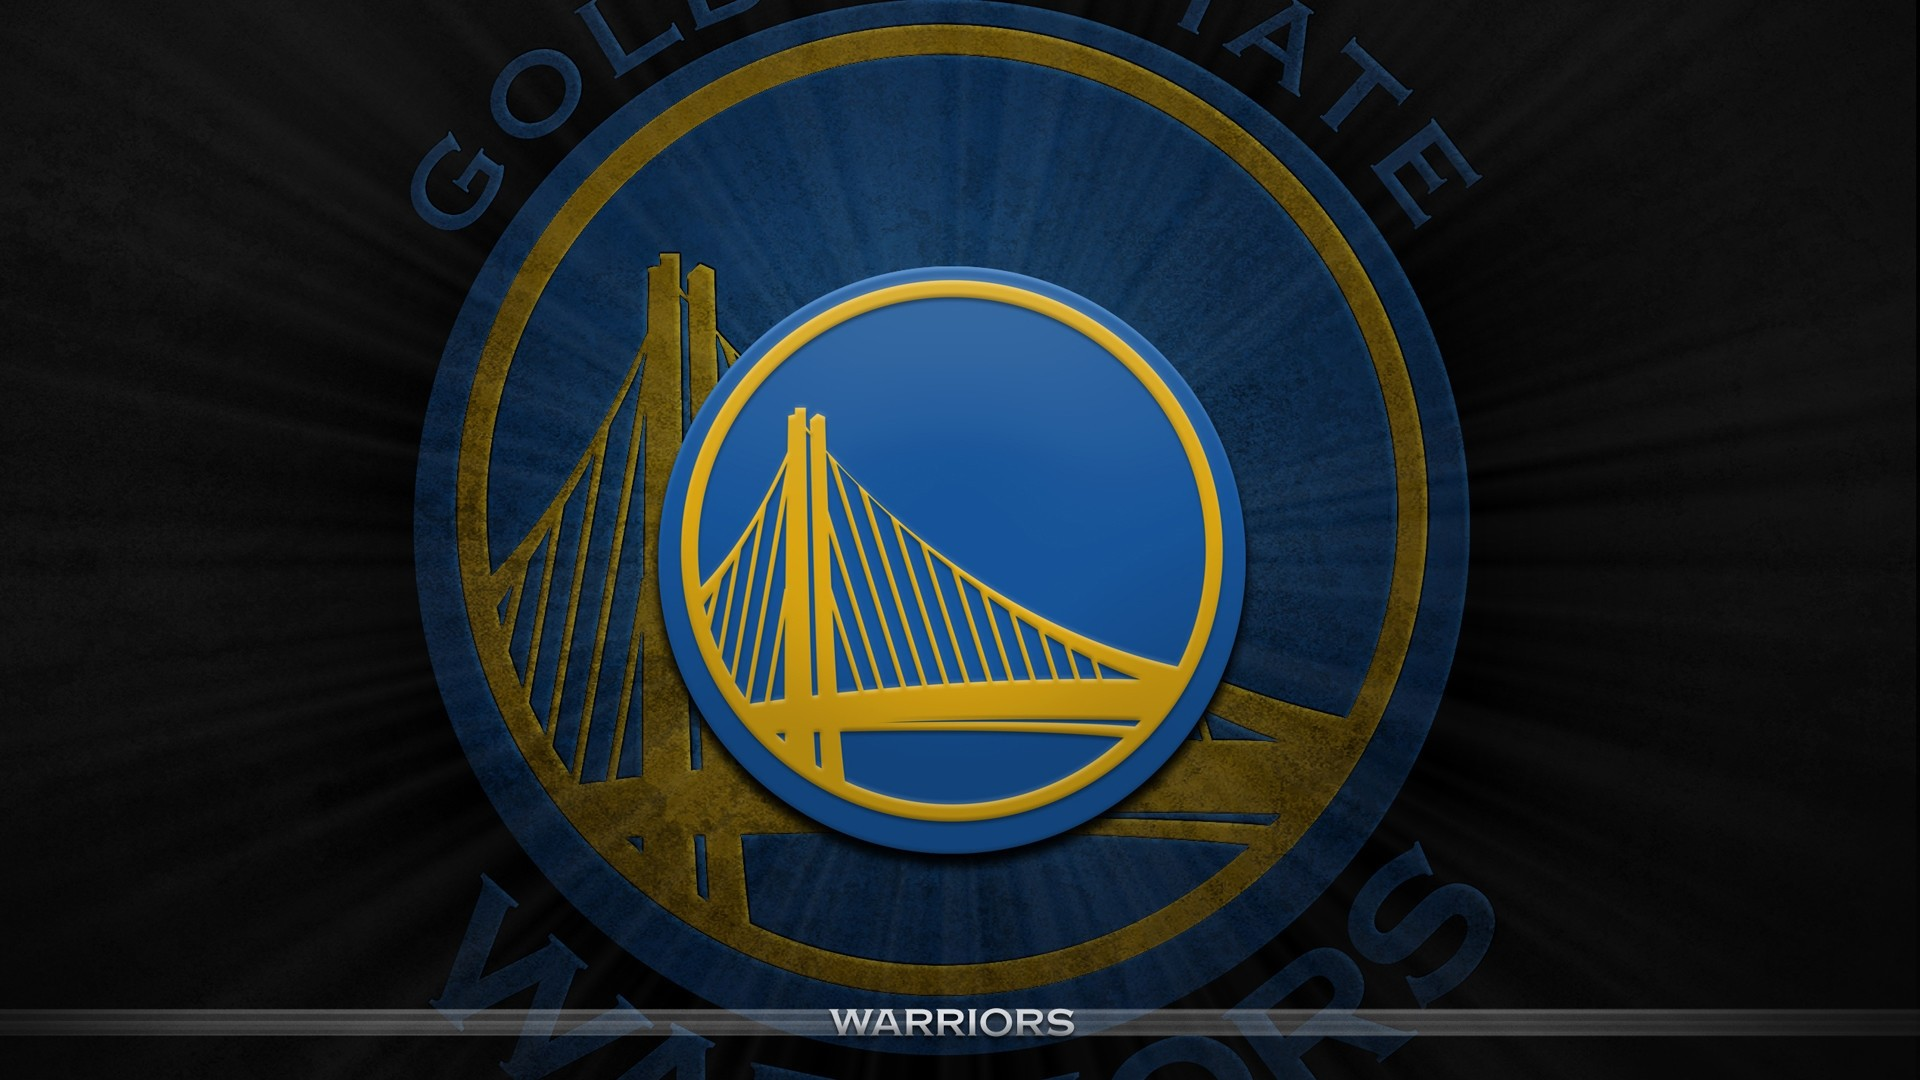 Golden State Warriors Background Wallpaper